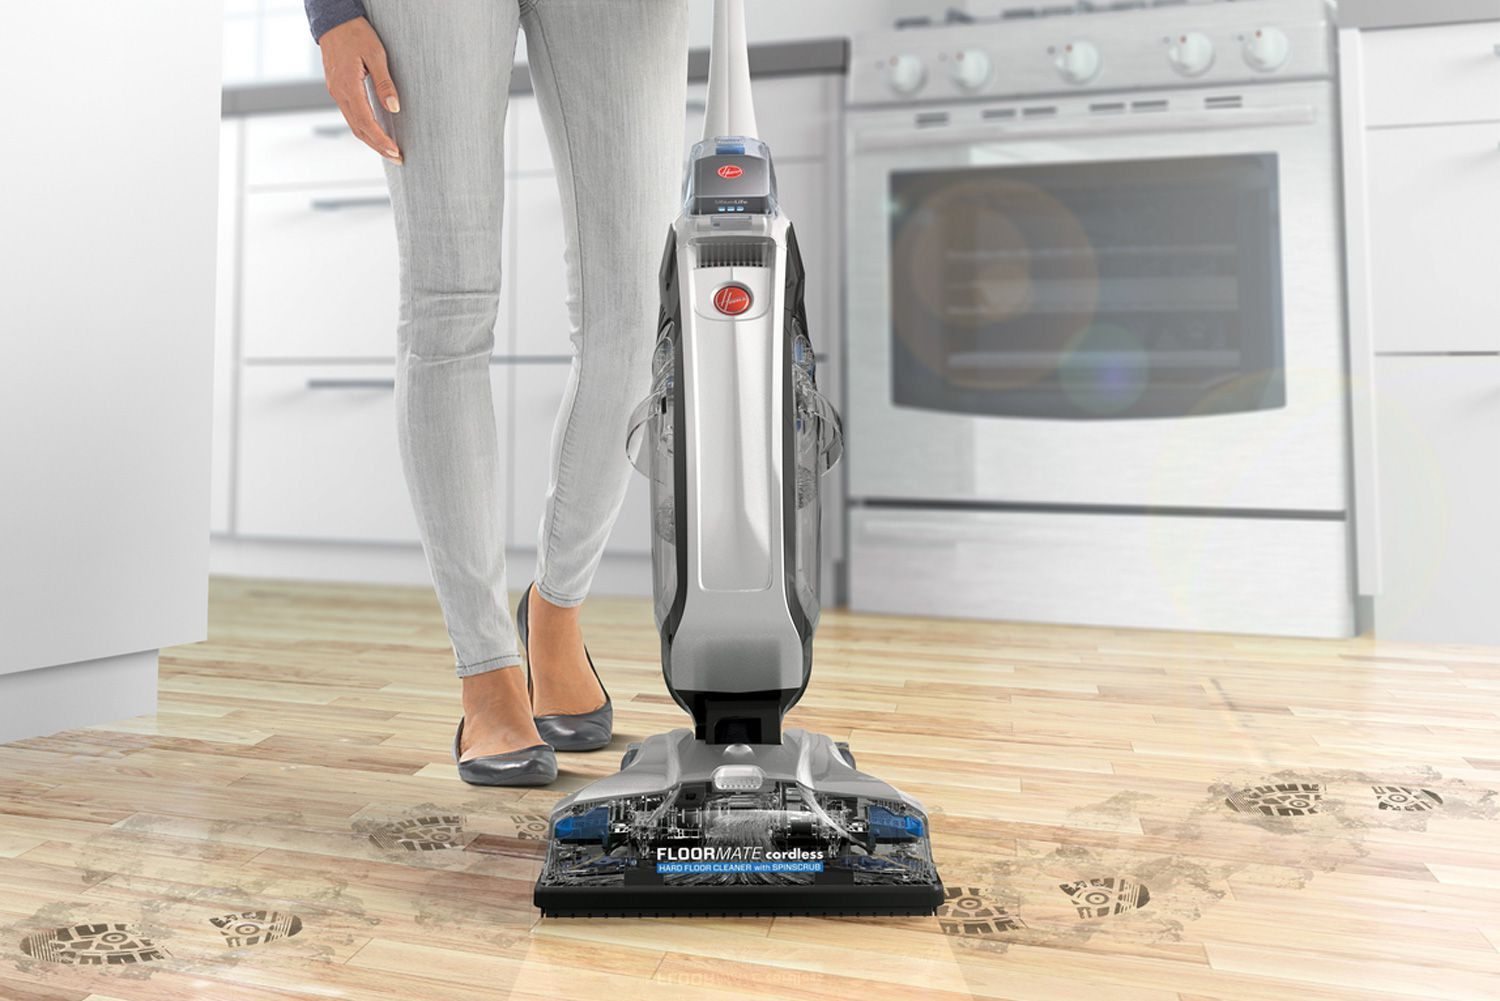 steam cleaners for hardwood floors ratings of hoover floormate cleaner review throughout hoover floormate 59a452af685fbe00102f4ce0